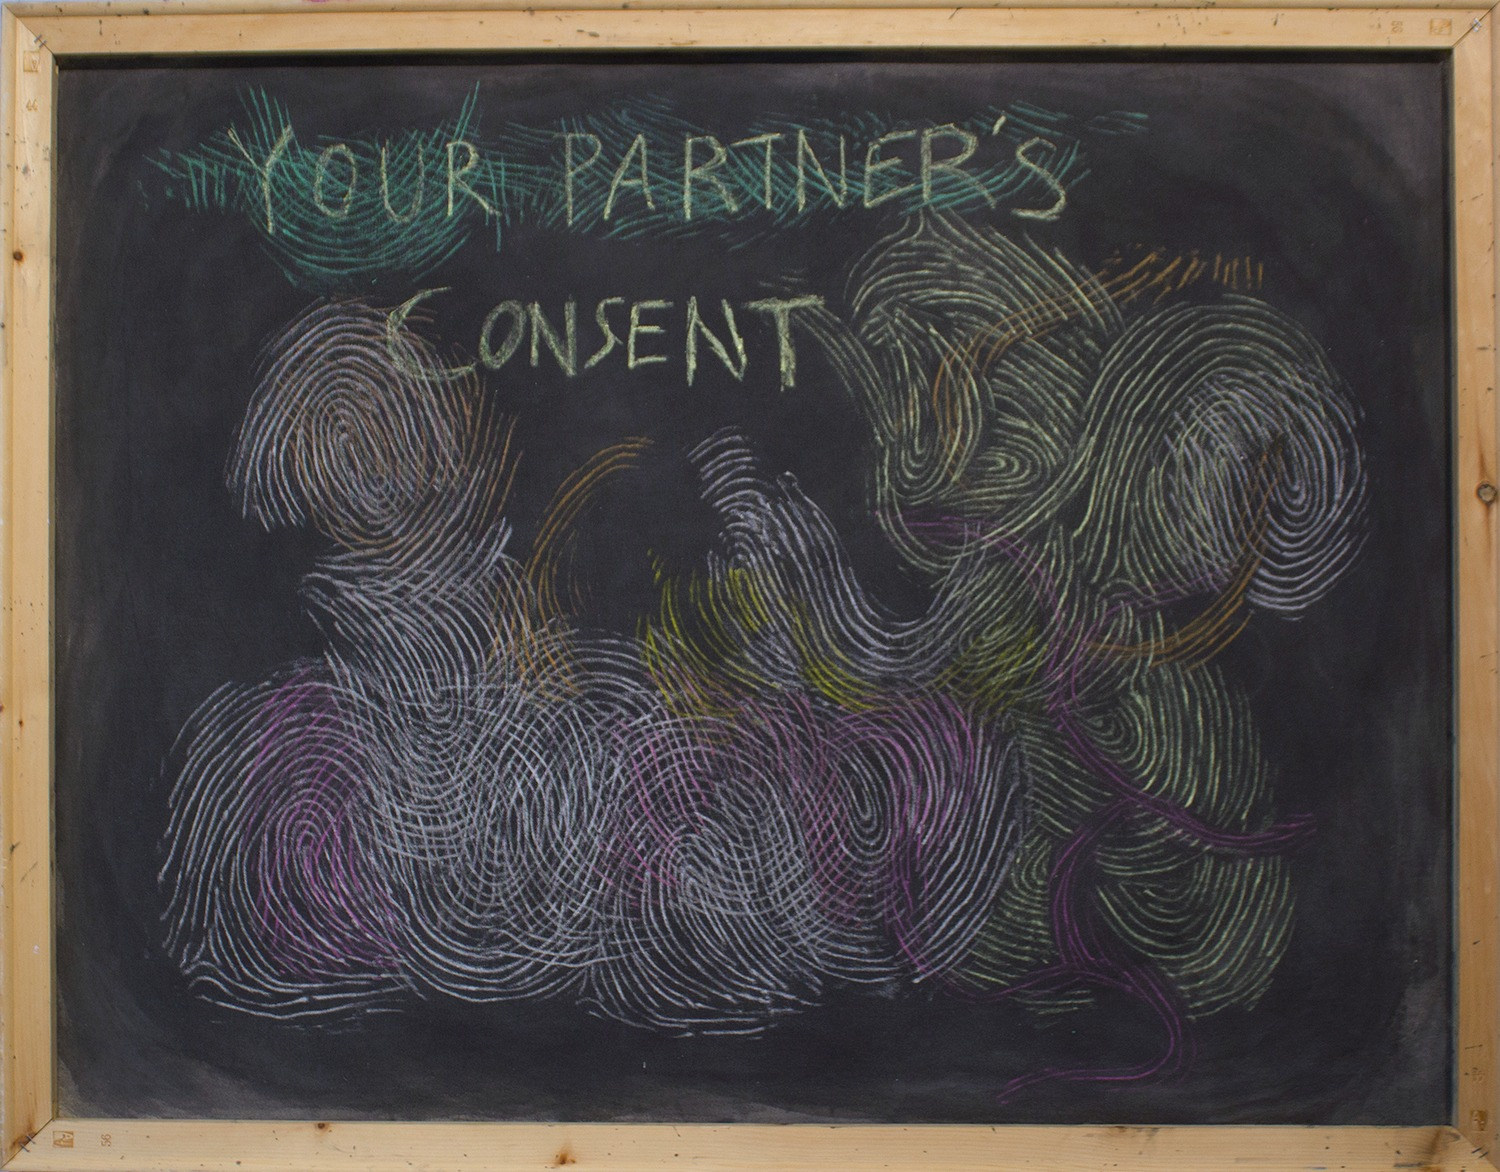 Your Partner's Consent, 2017